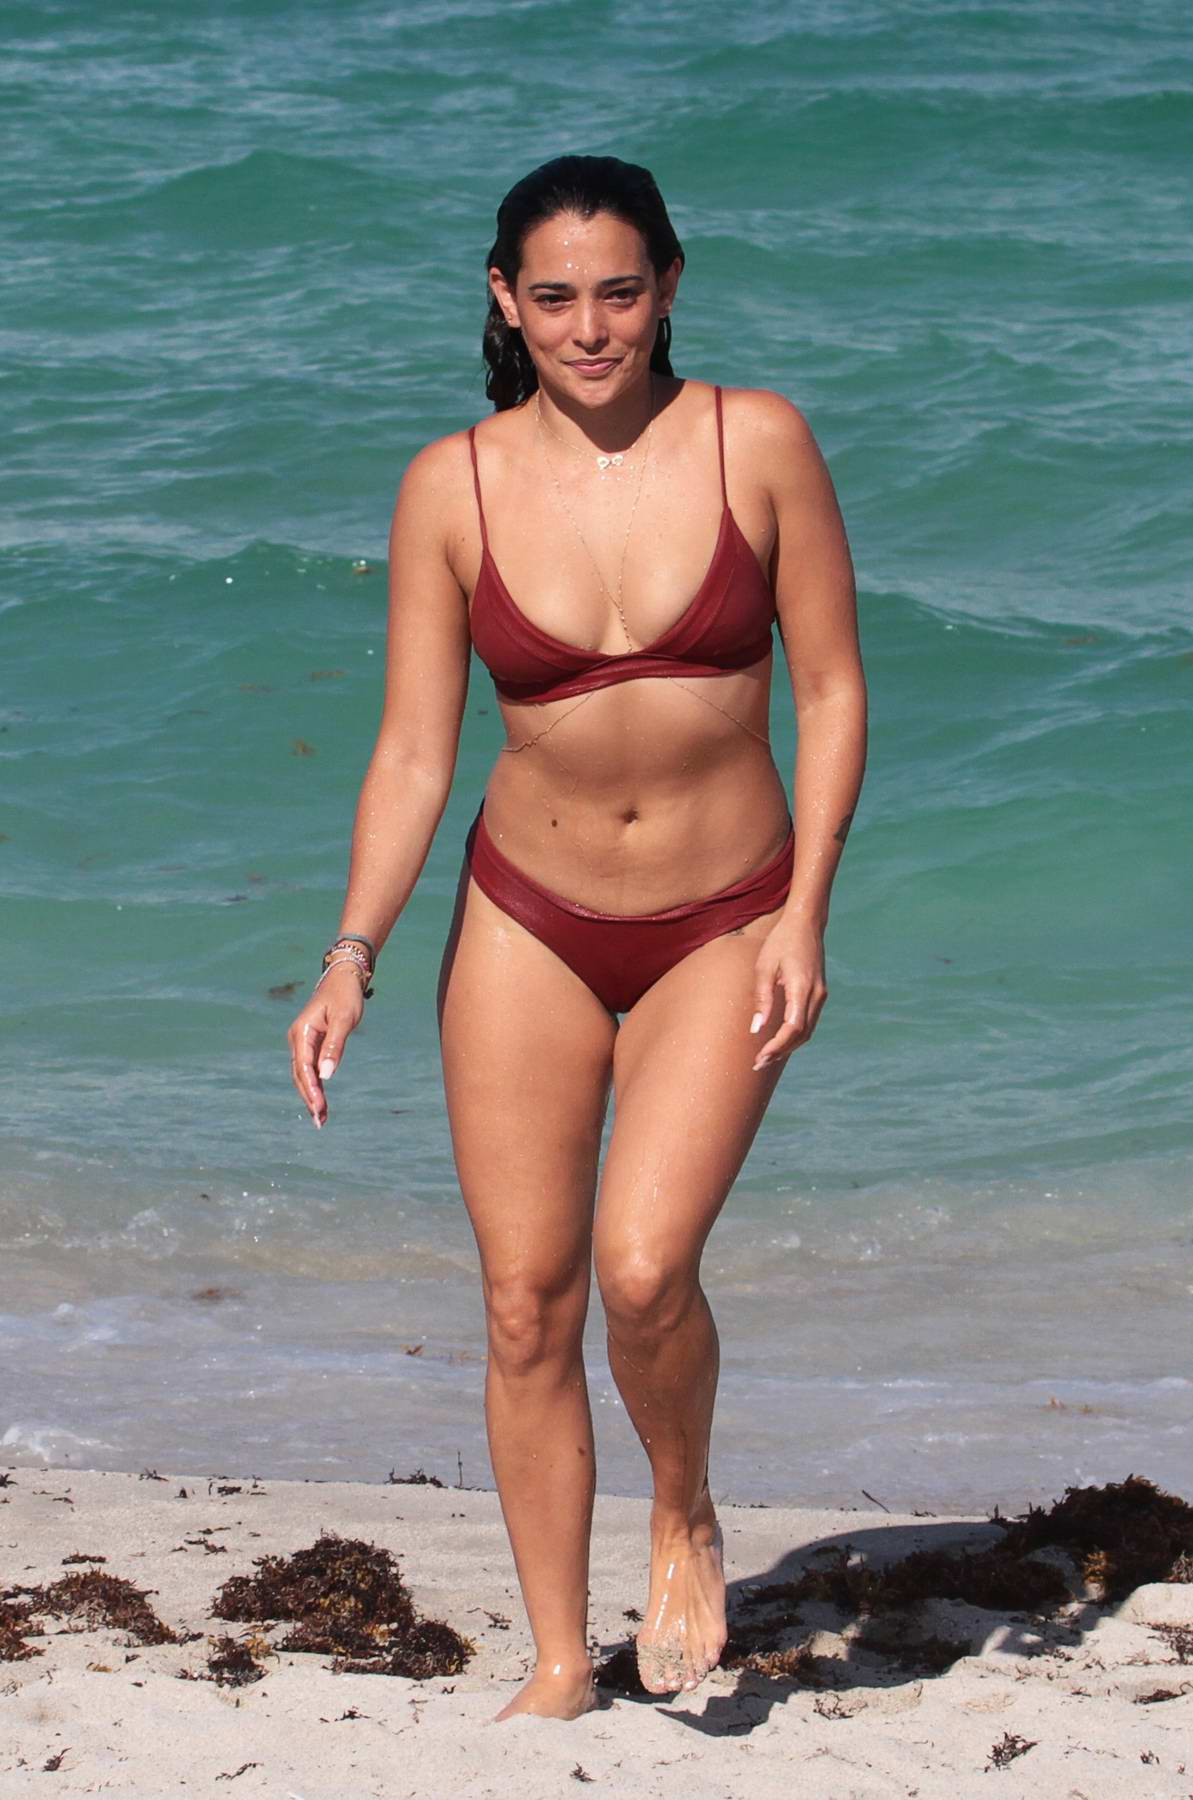 Natalie Martinez in a Bikini enjoys the Ocean and Coconut Water on the Beach in Miami